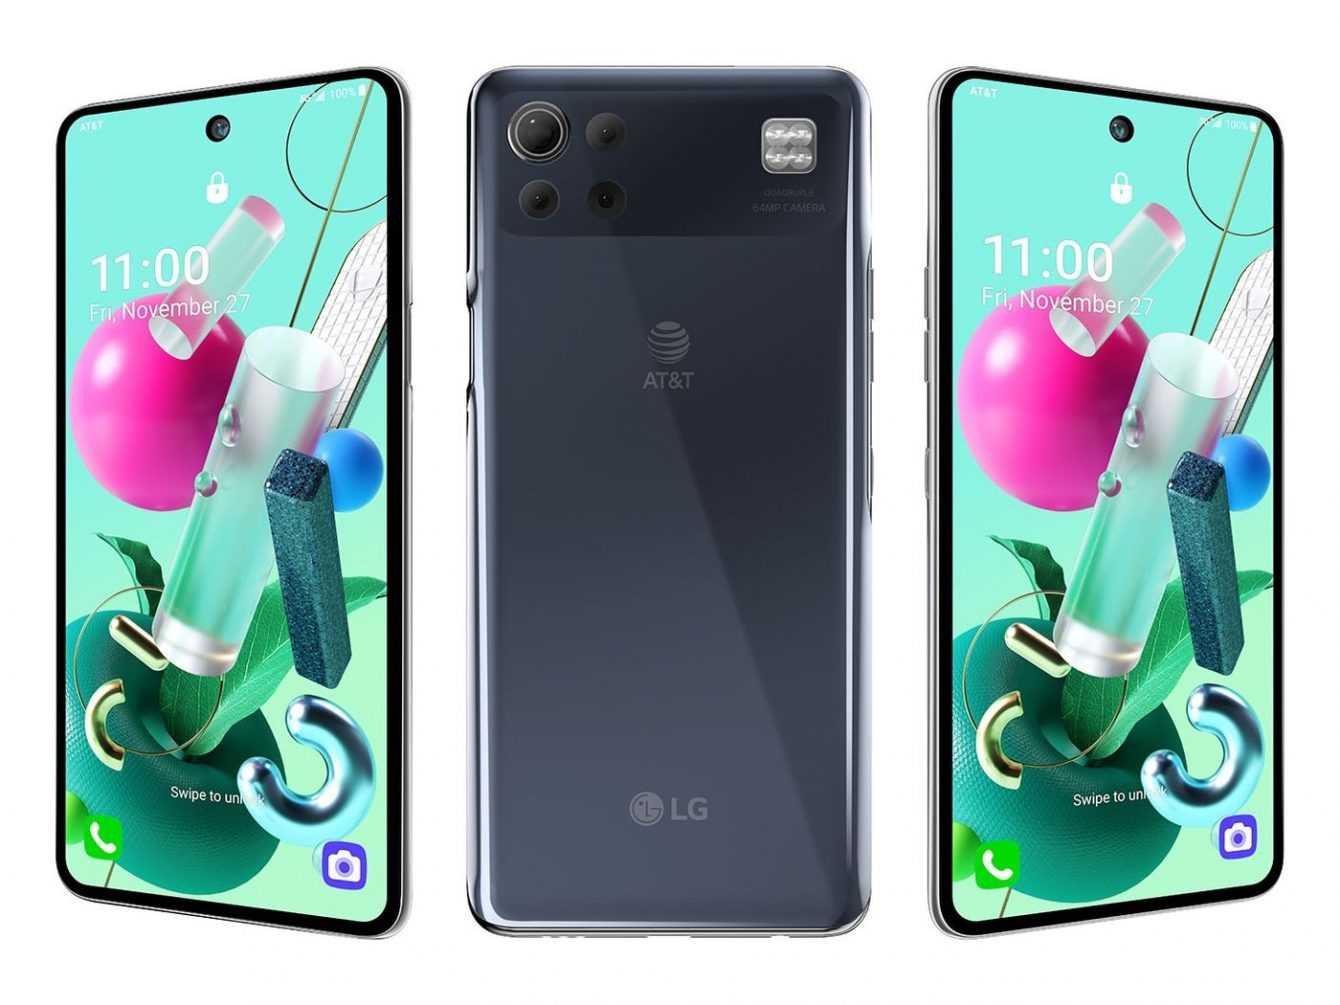 LG smartphone market: the exit from the mobile market is final